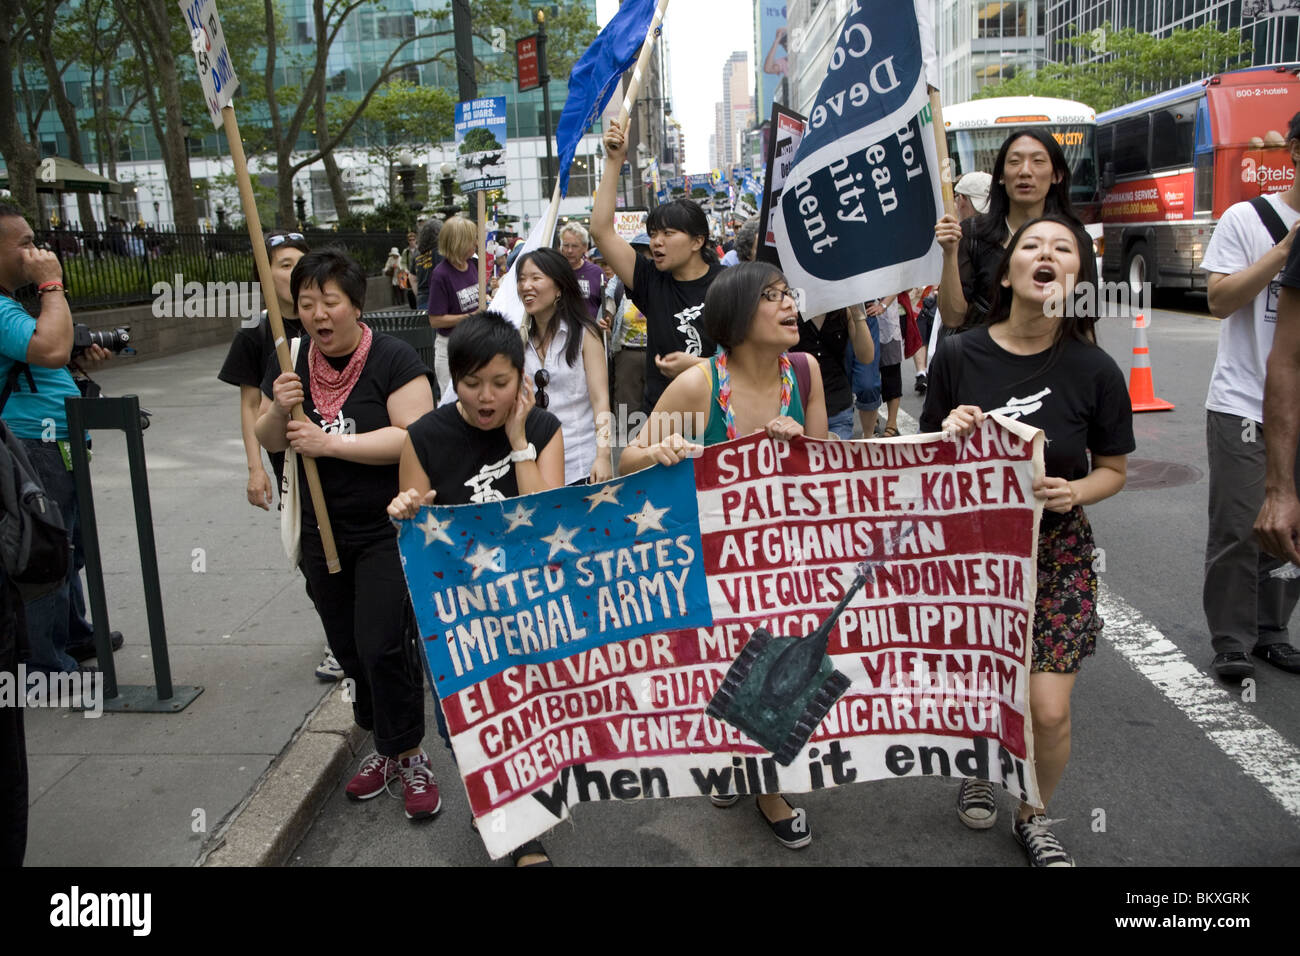 May 2, 2010: International ant-nuclear weapons demonstration and peace march to the United Nations in New York CIty - Stock Image